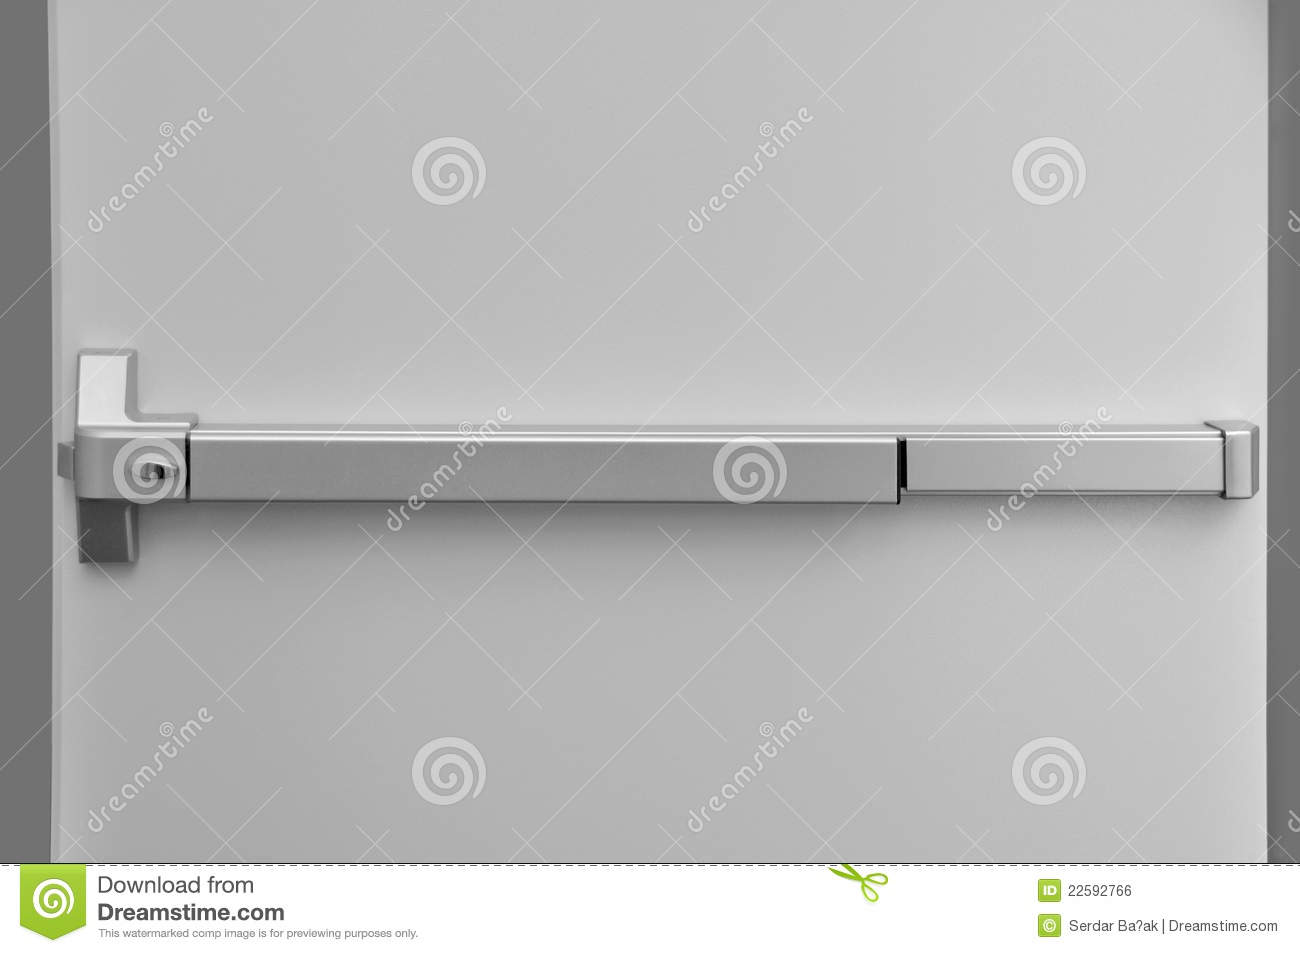 Emergency exit door stock photo. Image of city, help ...